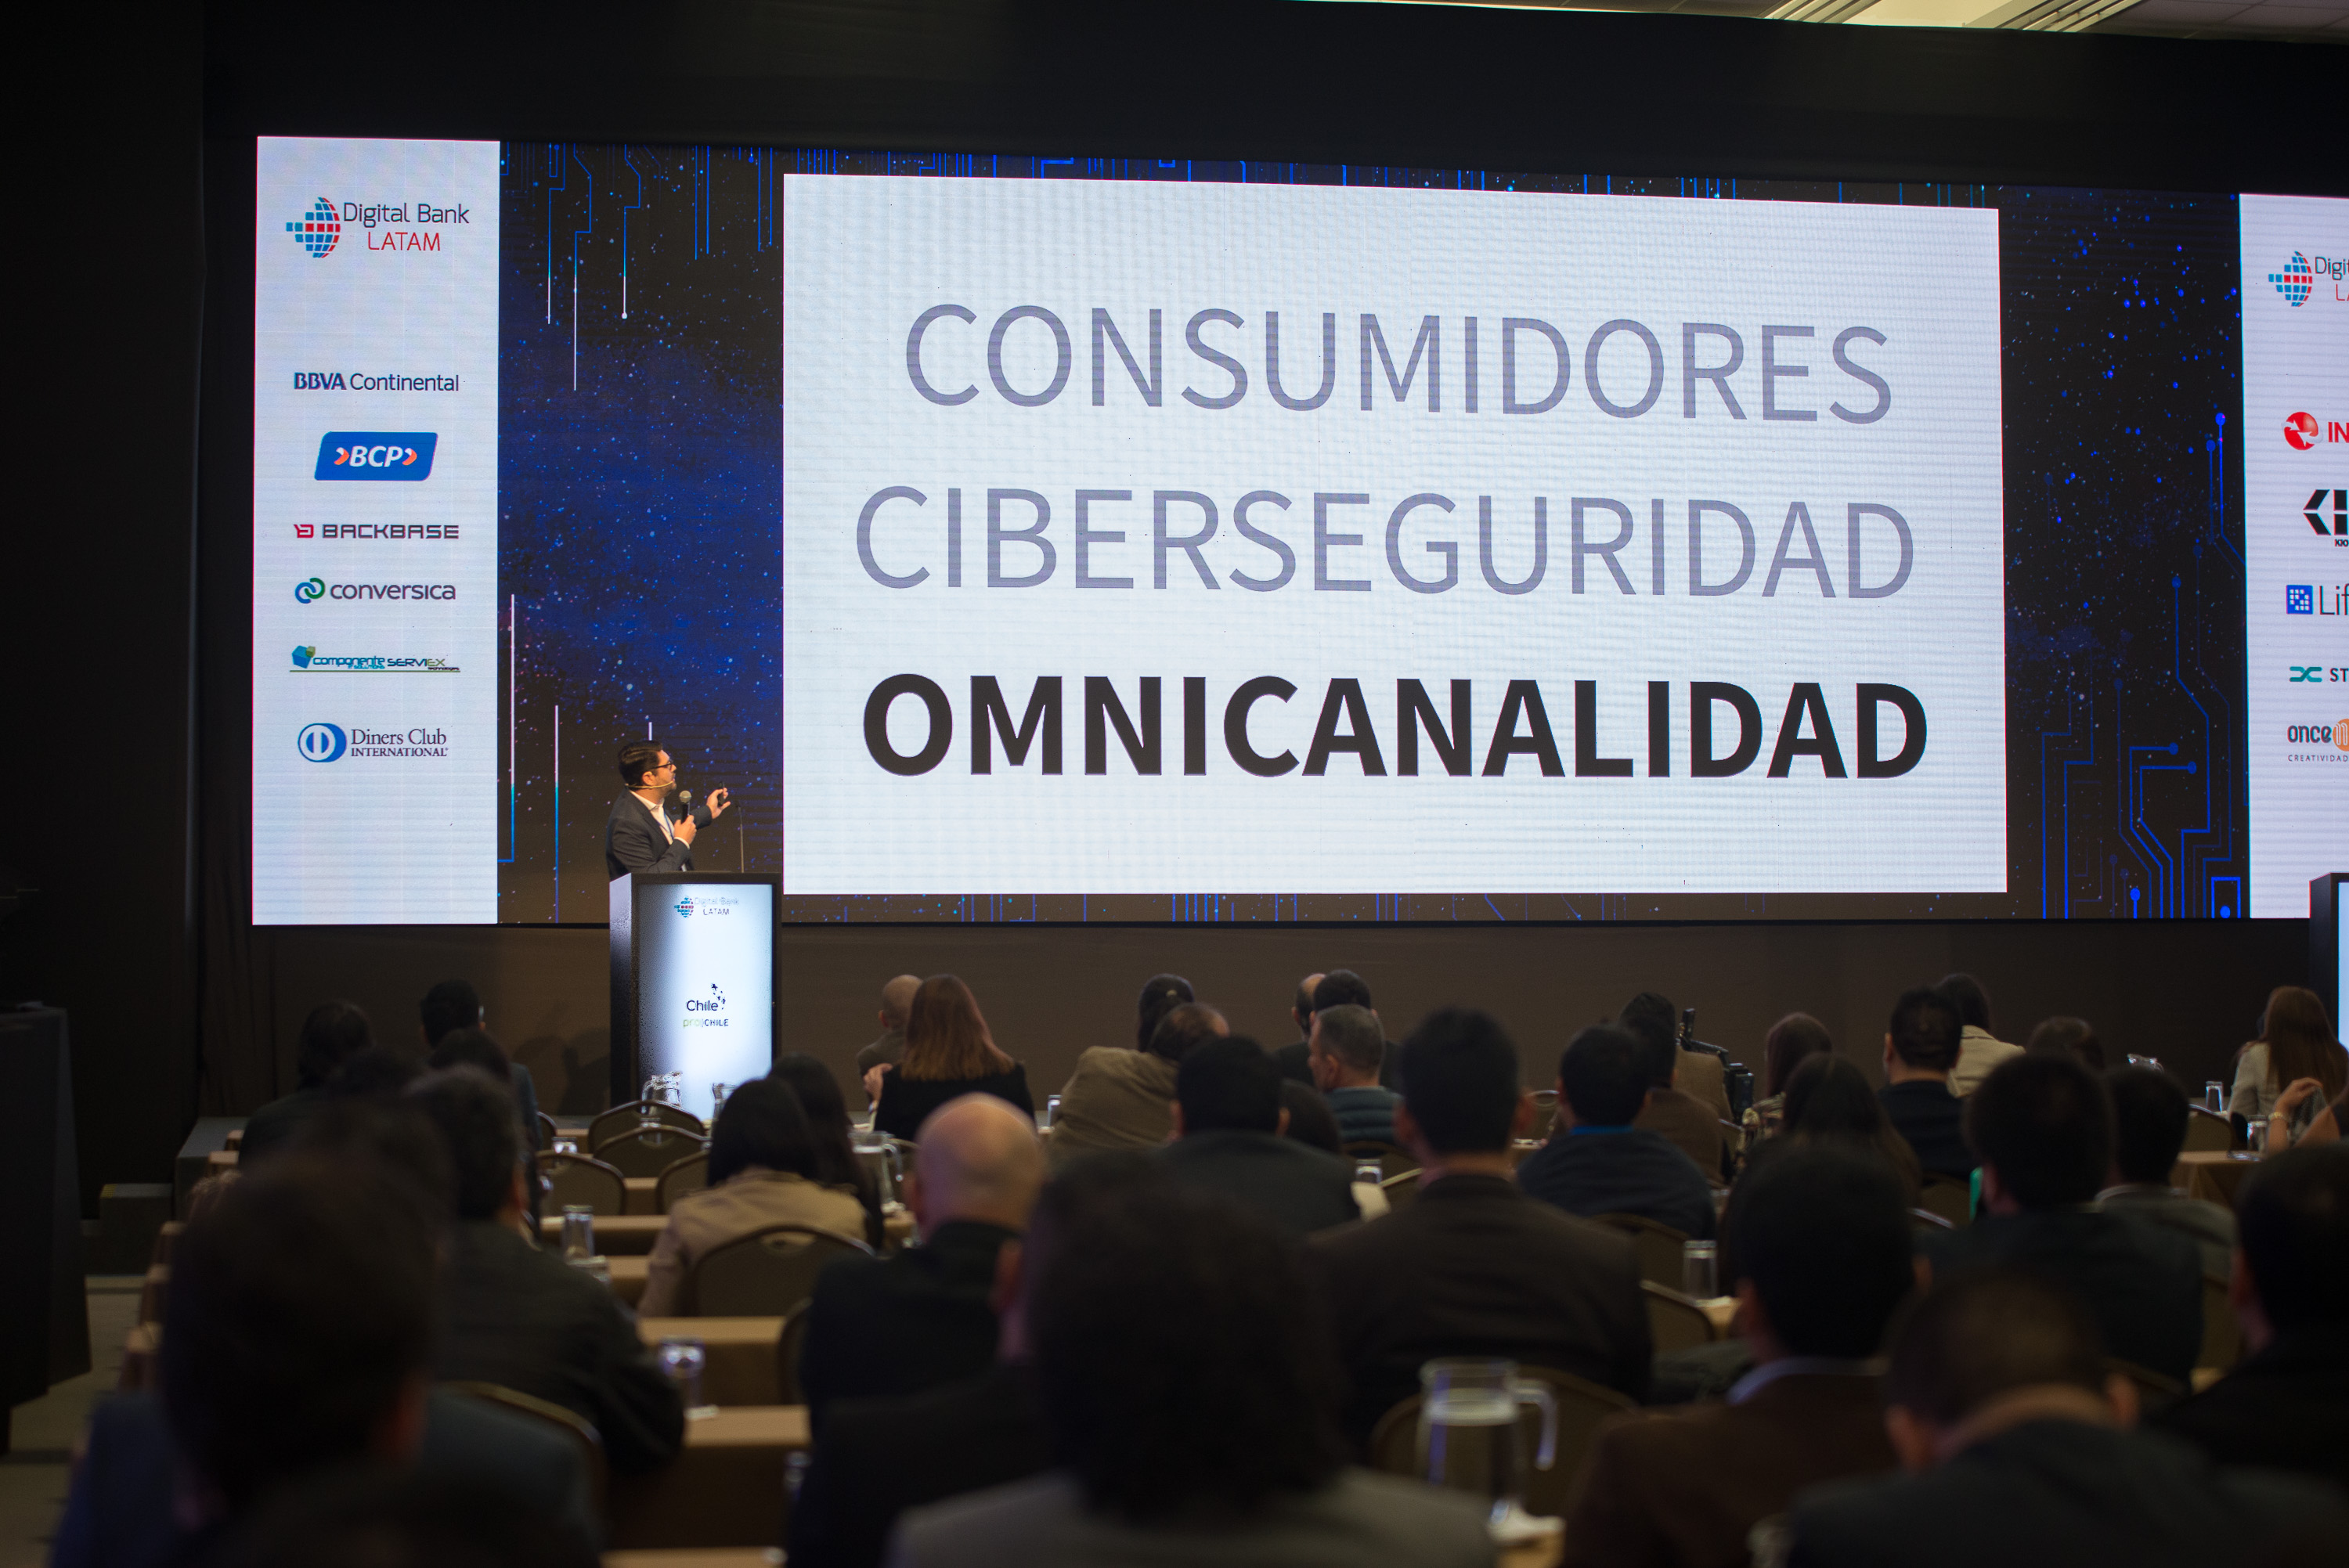 Digital-Bank-Latam-Lima-3.jpg